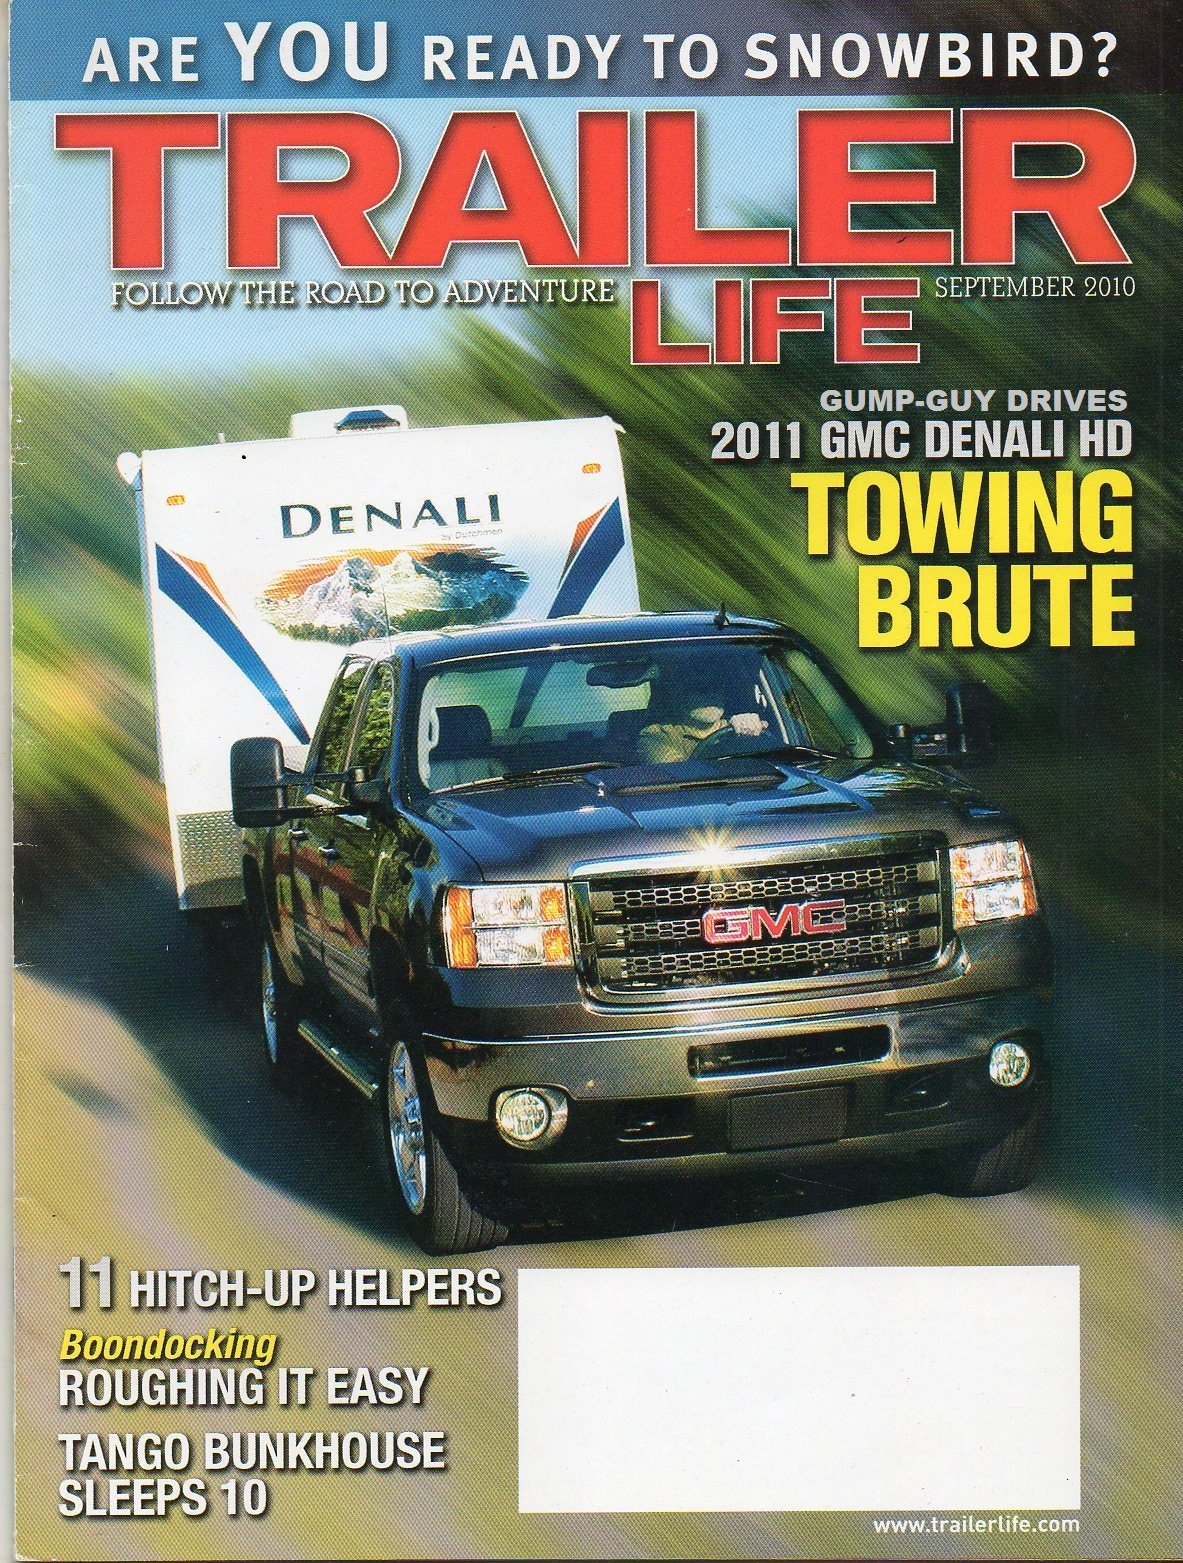 Read Online Trailer Life Magazine September 2010 FOLLOW THE ROAD TO ADVENTURE 11 Hitch-Up Helpers TANGO BUNKHOUSE SLEEPS 10 PDF